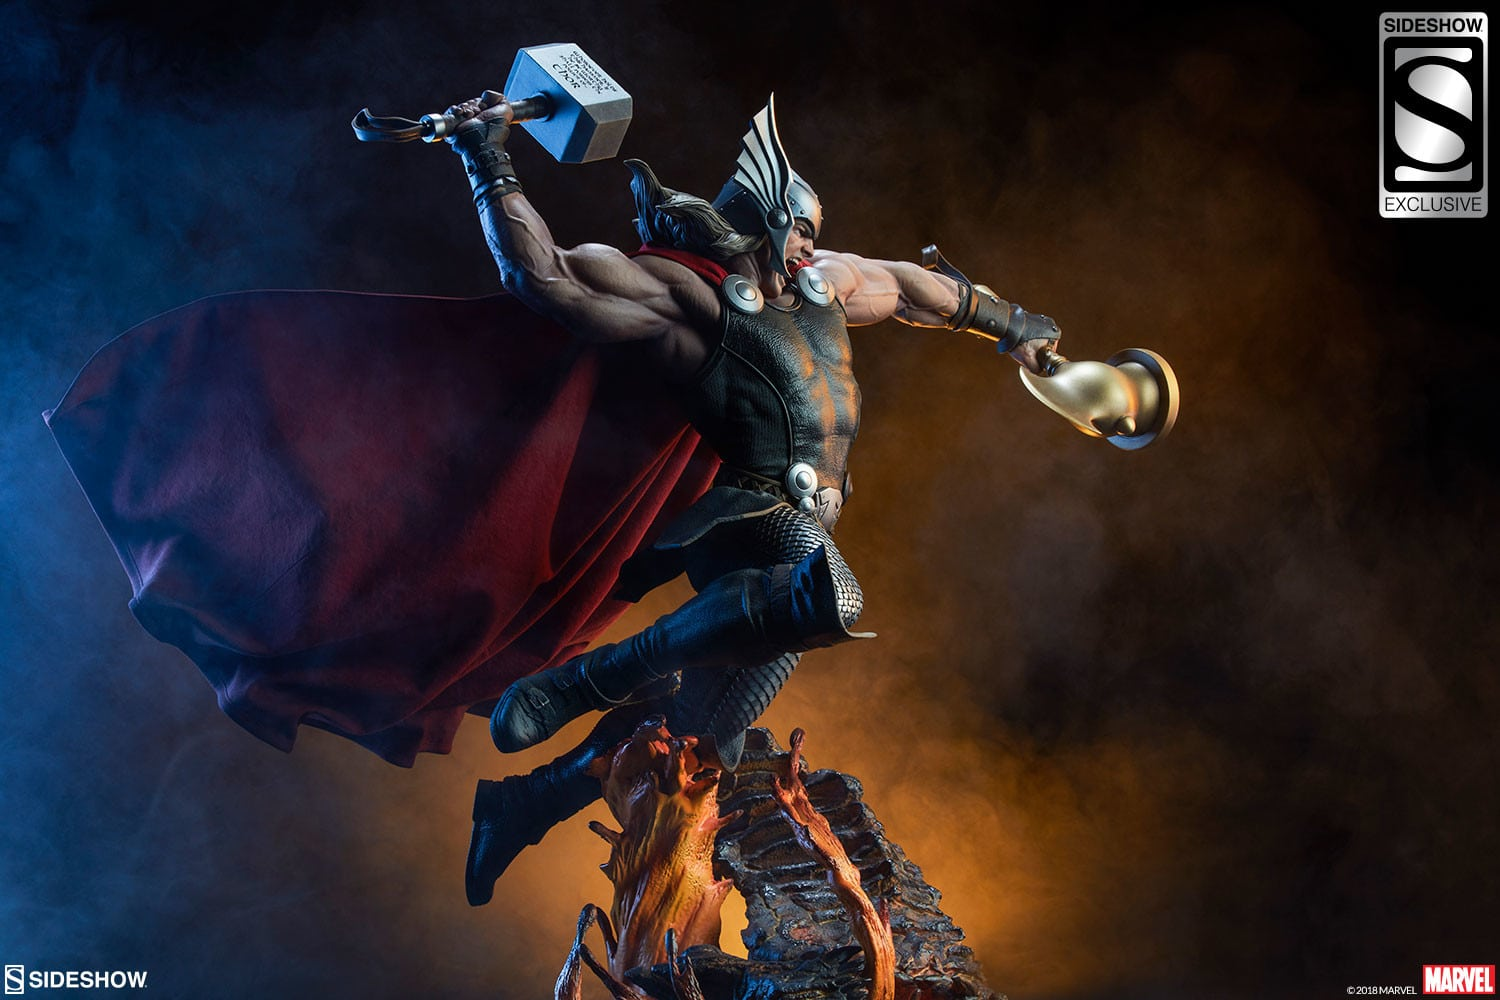 Podcast Episode 8: Daniel Bel of Sideshow Collectibles